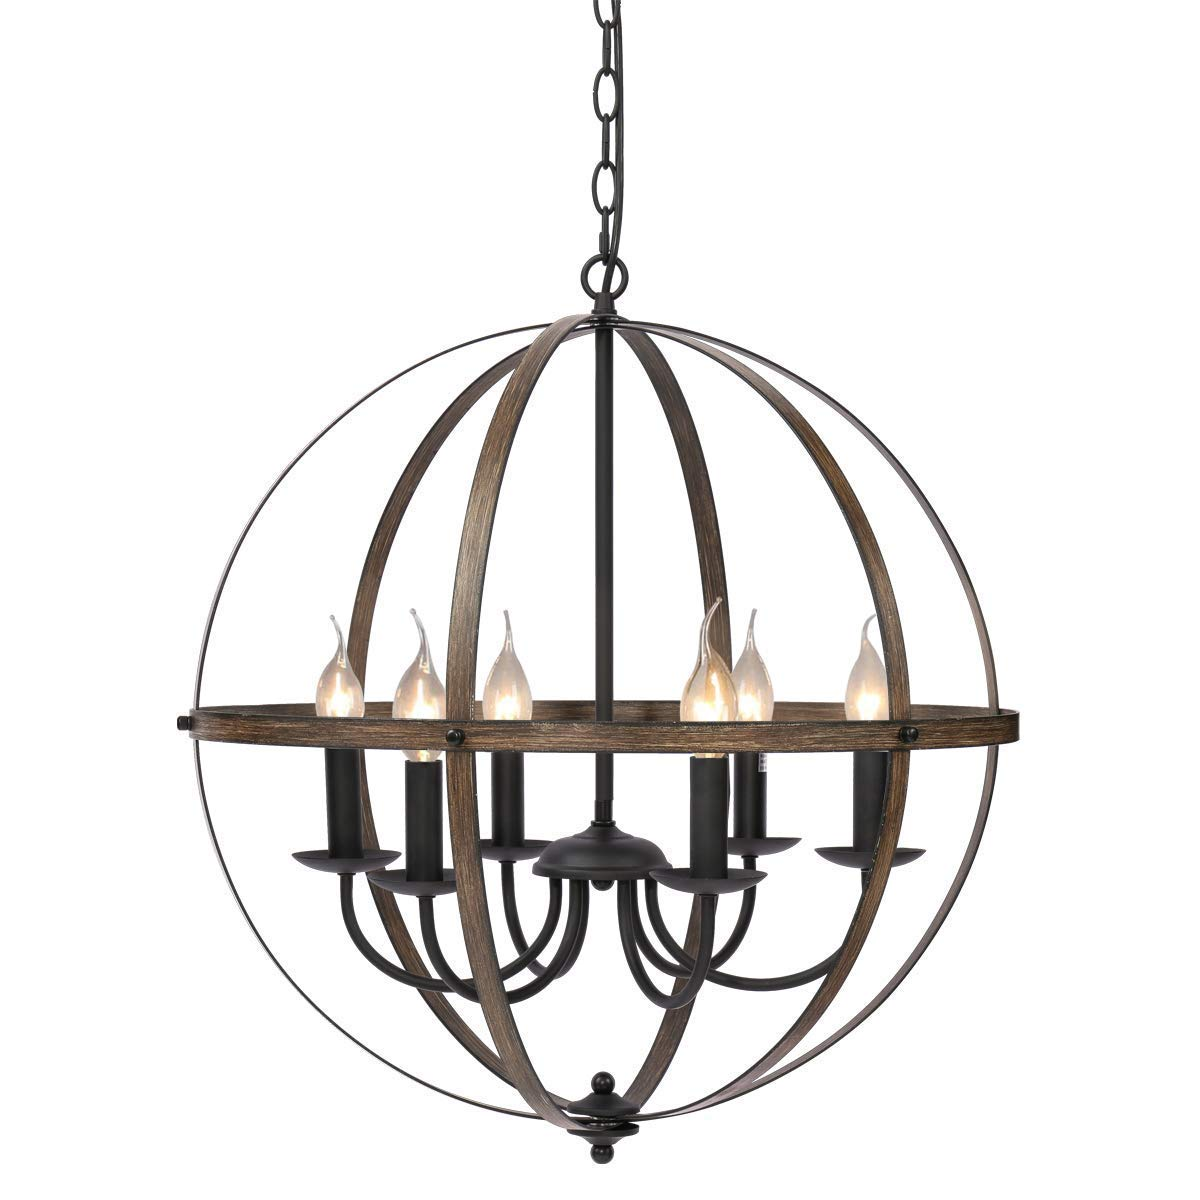 KingSo 6 Light Chandelier 23.62'' Rustic Metal Pendant Light Oil Rubbed Bronze Finish Wood Texture Industrial Ceiling Hanging Light Fixture for Indoor Kitchen Island Dining Living Room Farmhouse by KingSo